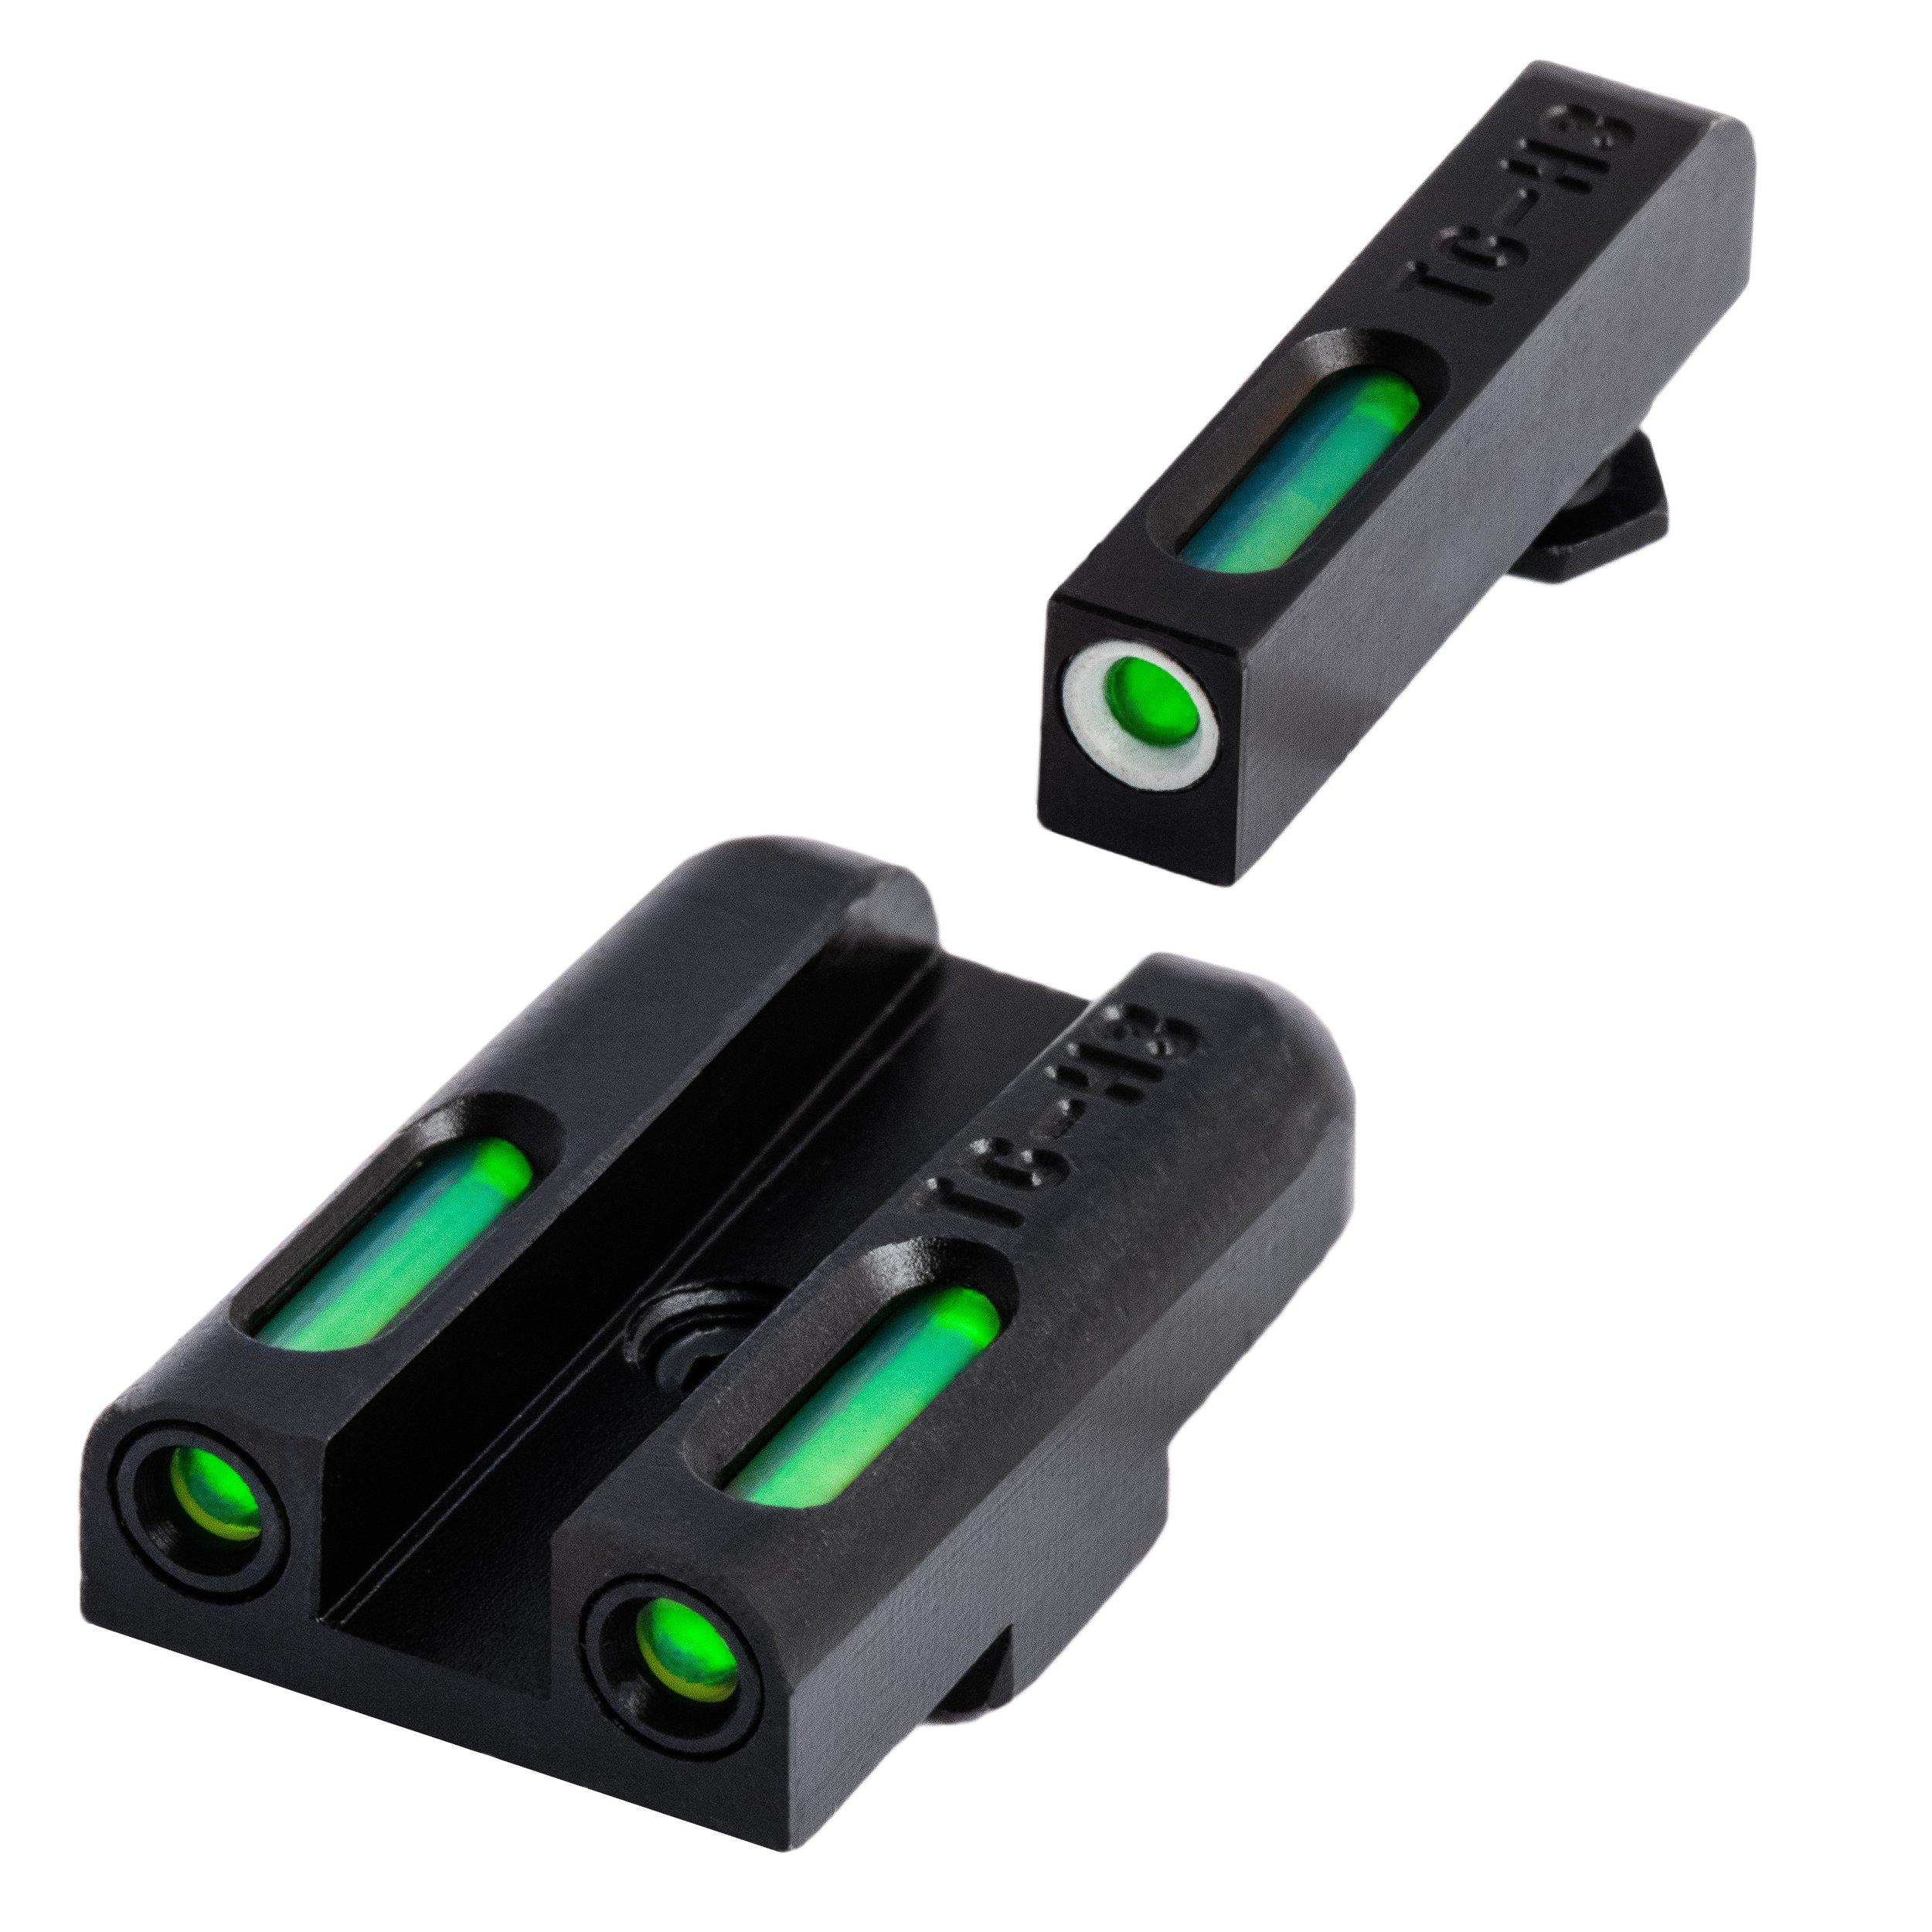 TRUGLO TFX Tritium and Fiber-Optic Xtreme Handgun Sights for Glock Pistols, Glock 42, 43